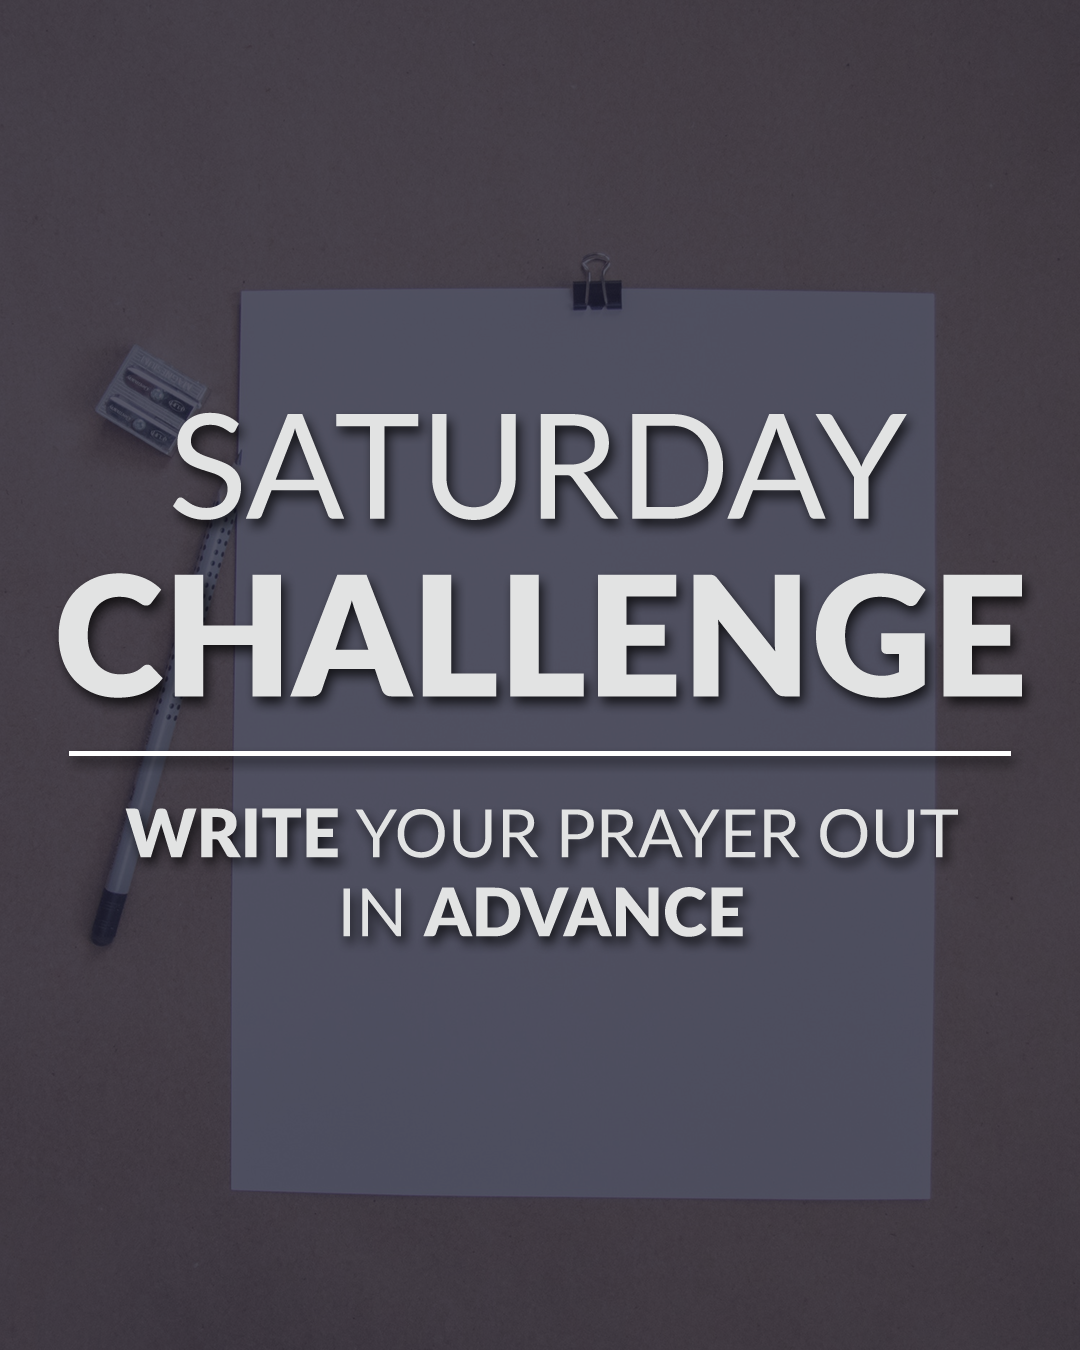 Saturday Challenge - Write Your Prayer Out In Advance